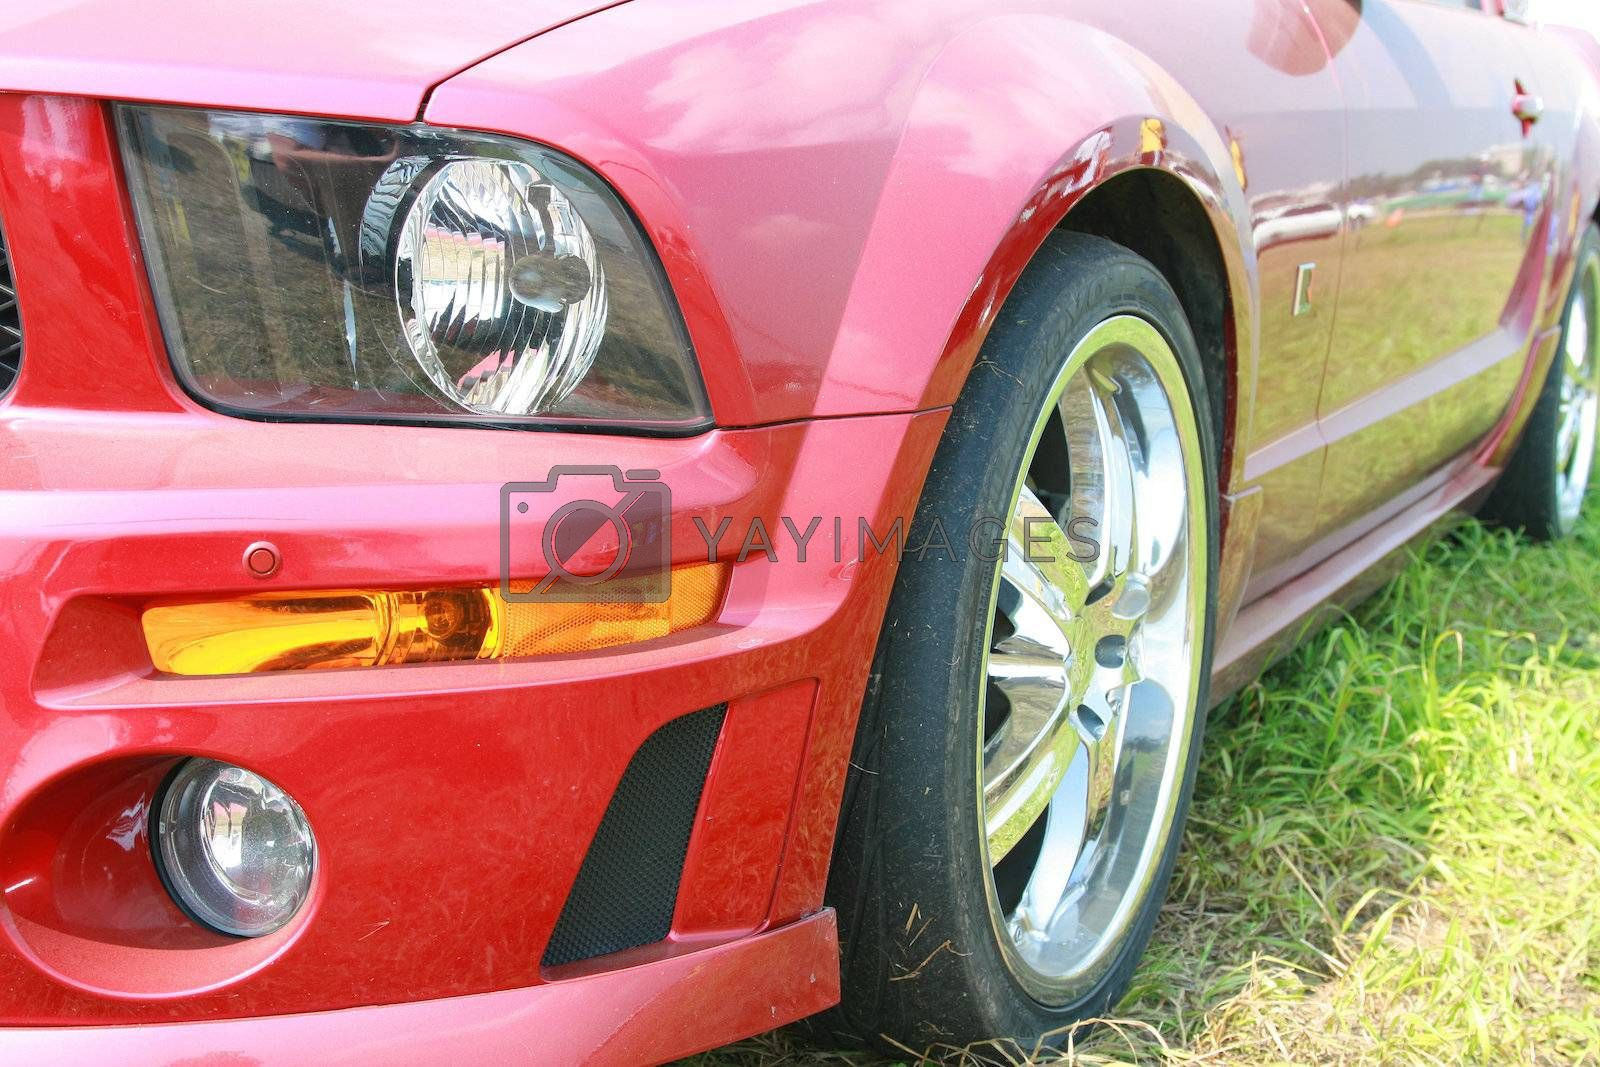 Fragment of the red sports car costing on the ground